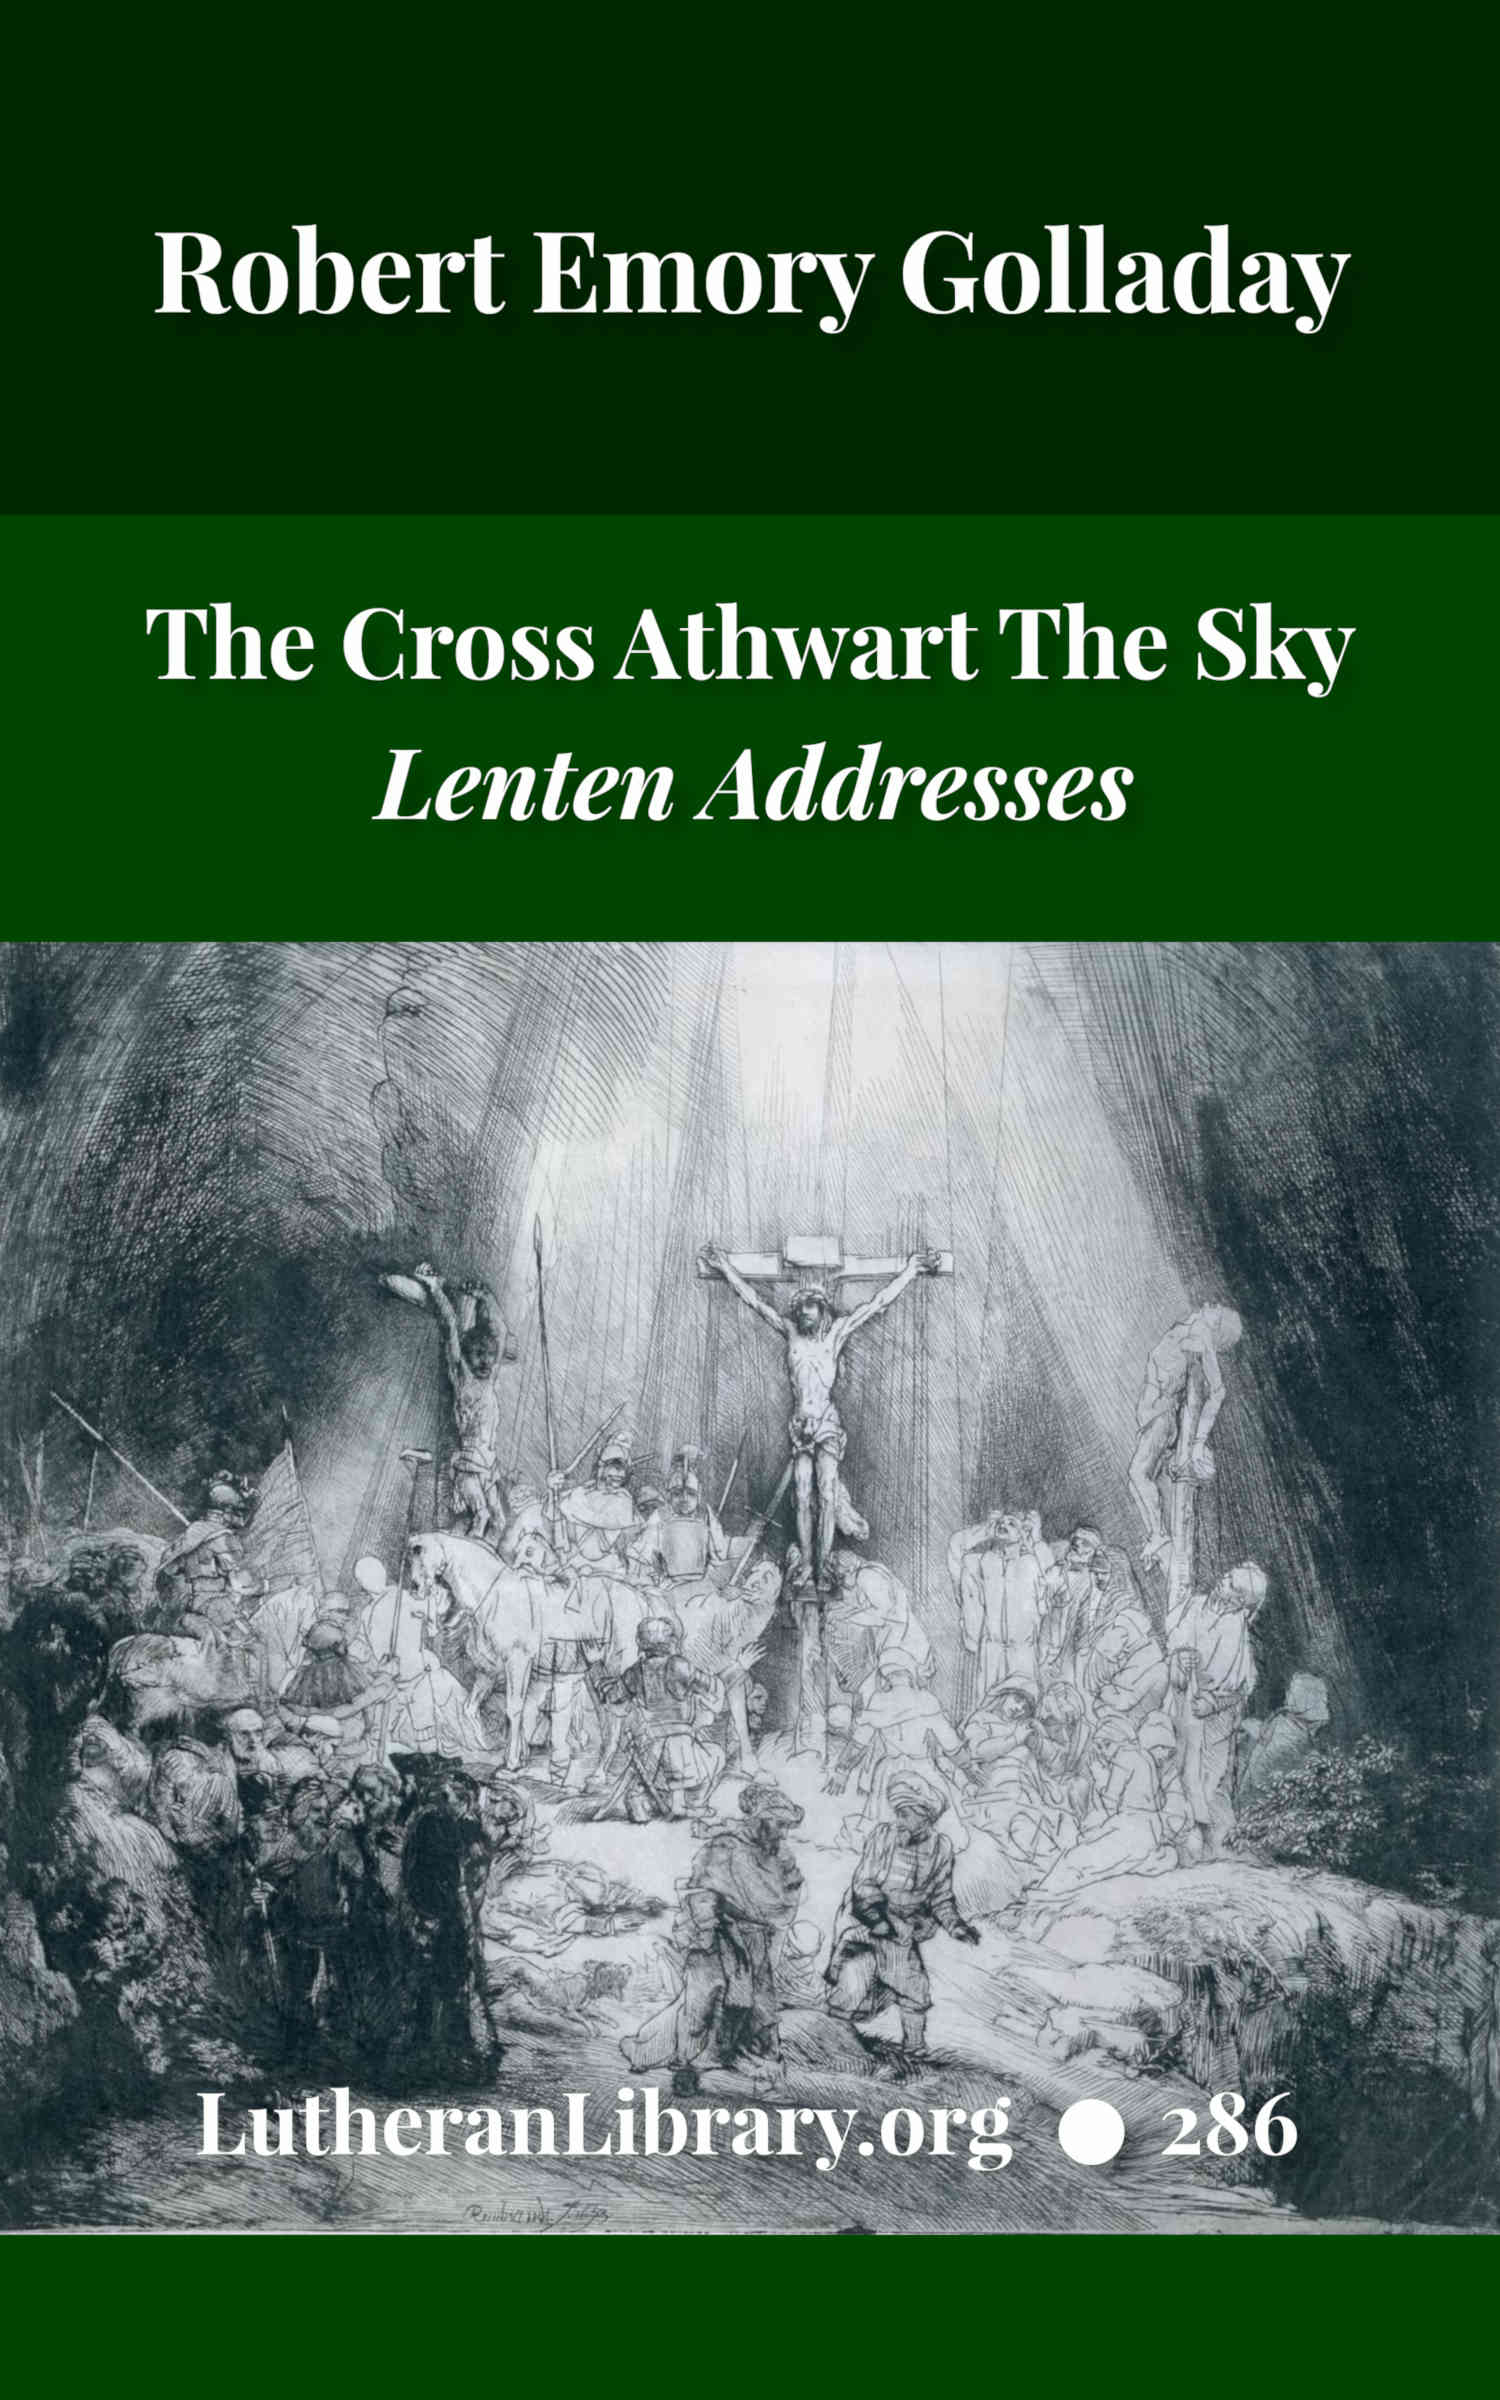 The Cross Athwart The Sky by Robert Golladay